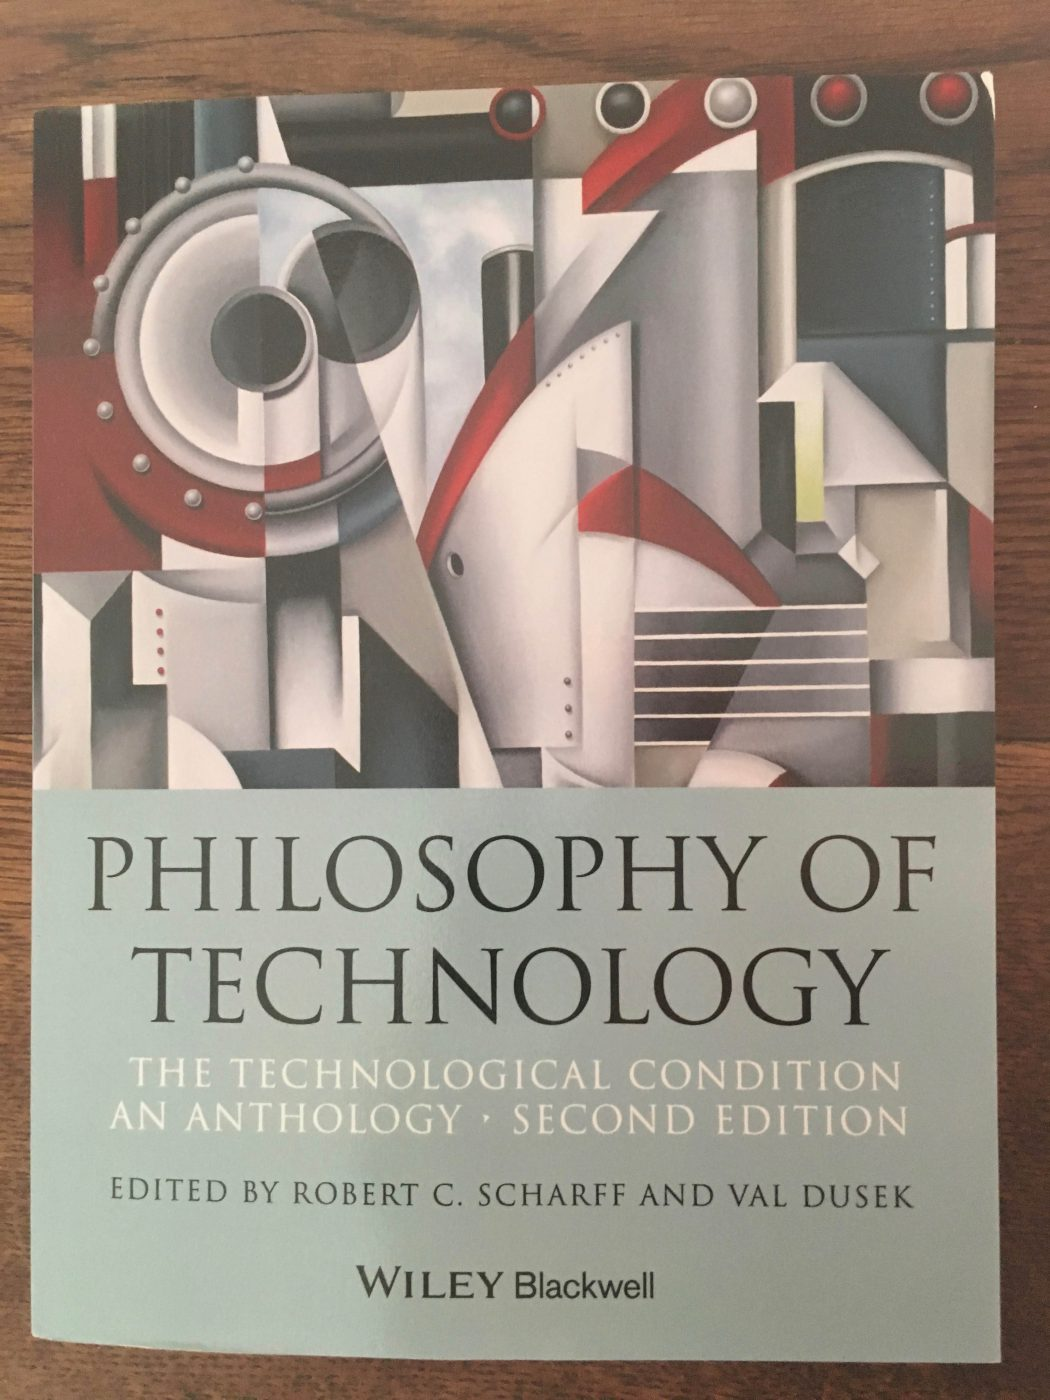 Philosophy of Technology course textbook